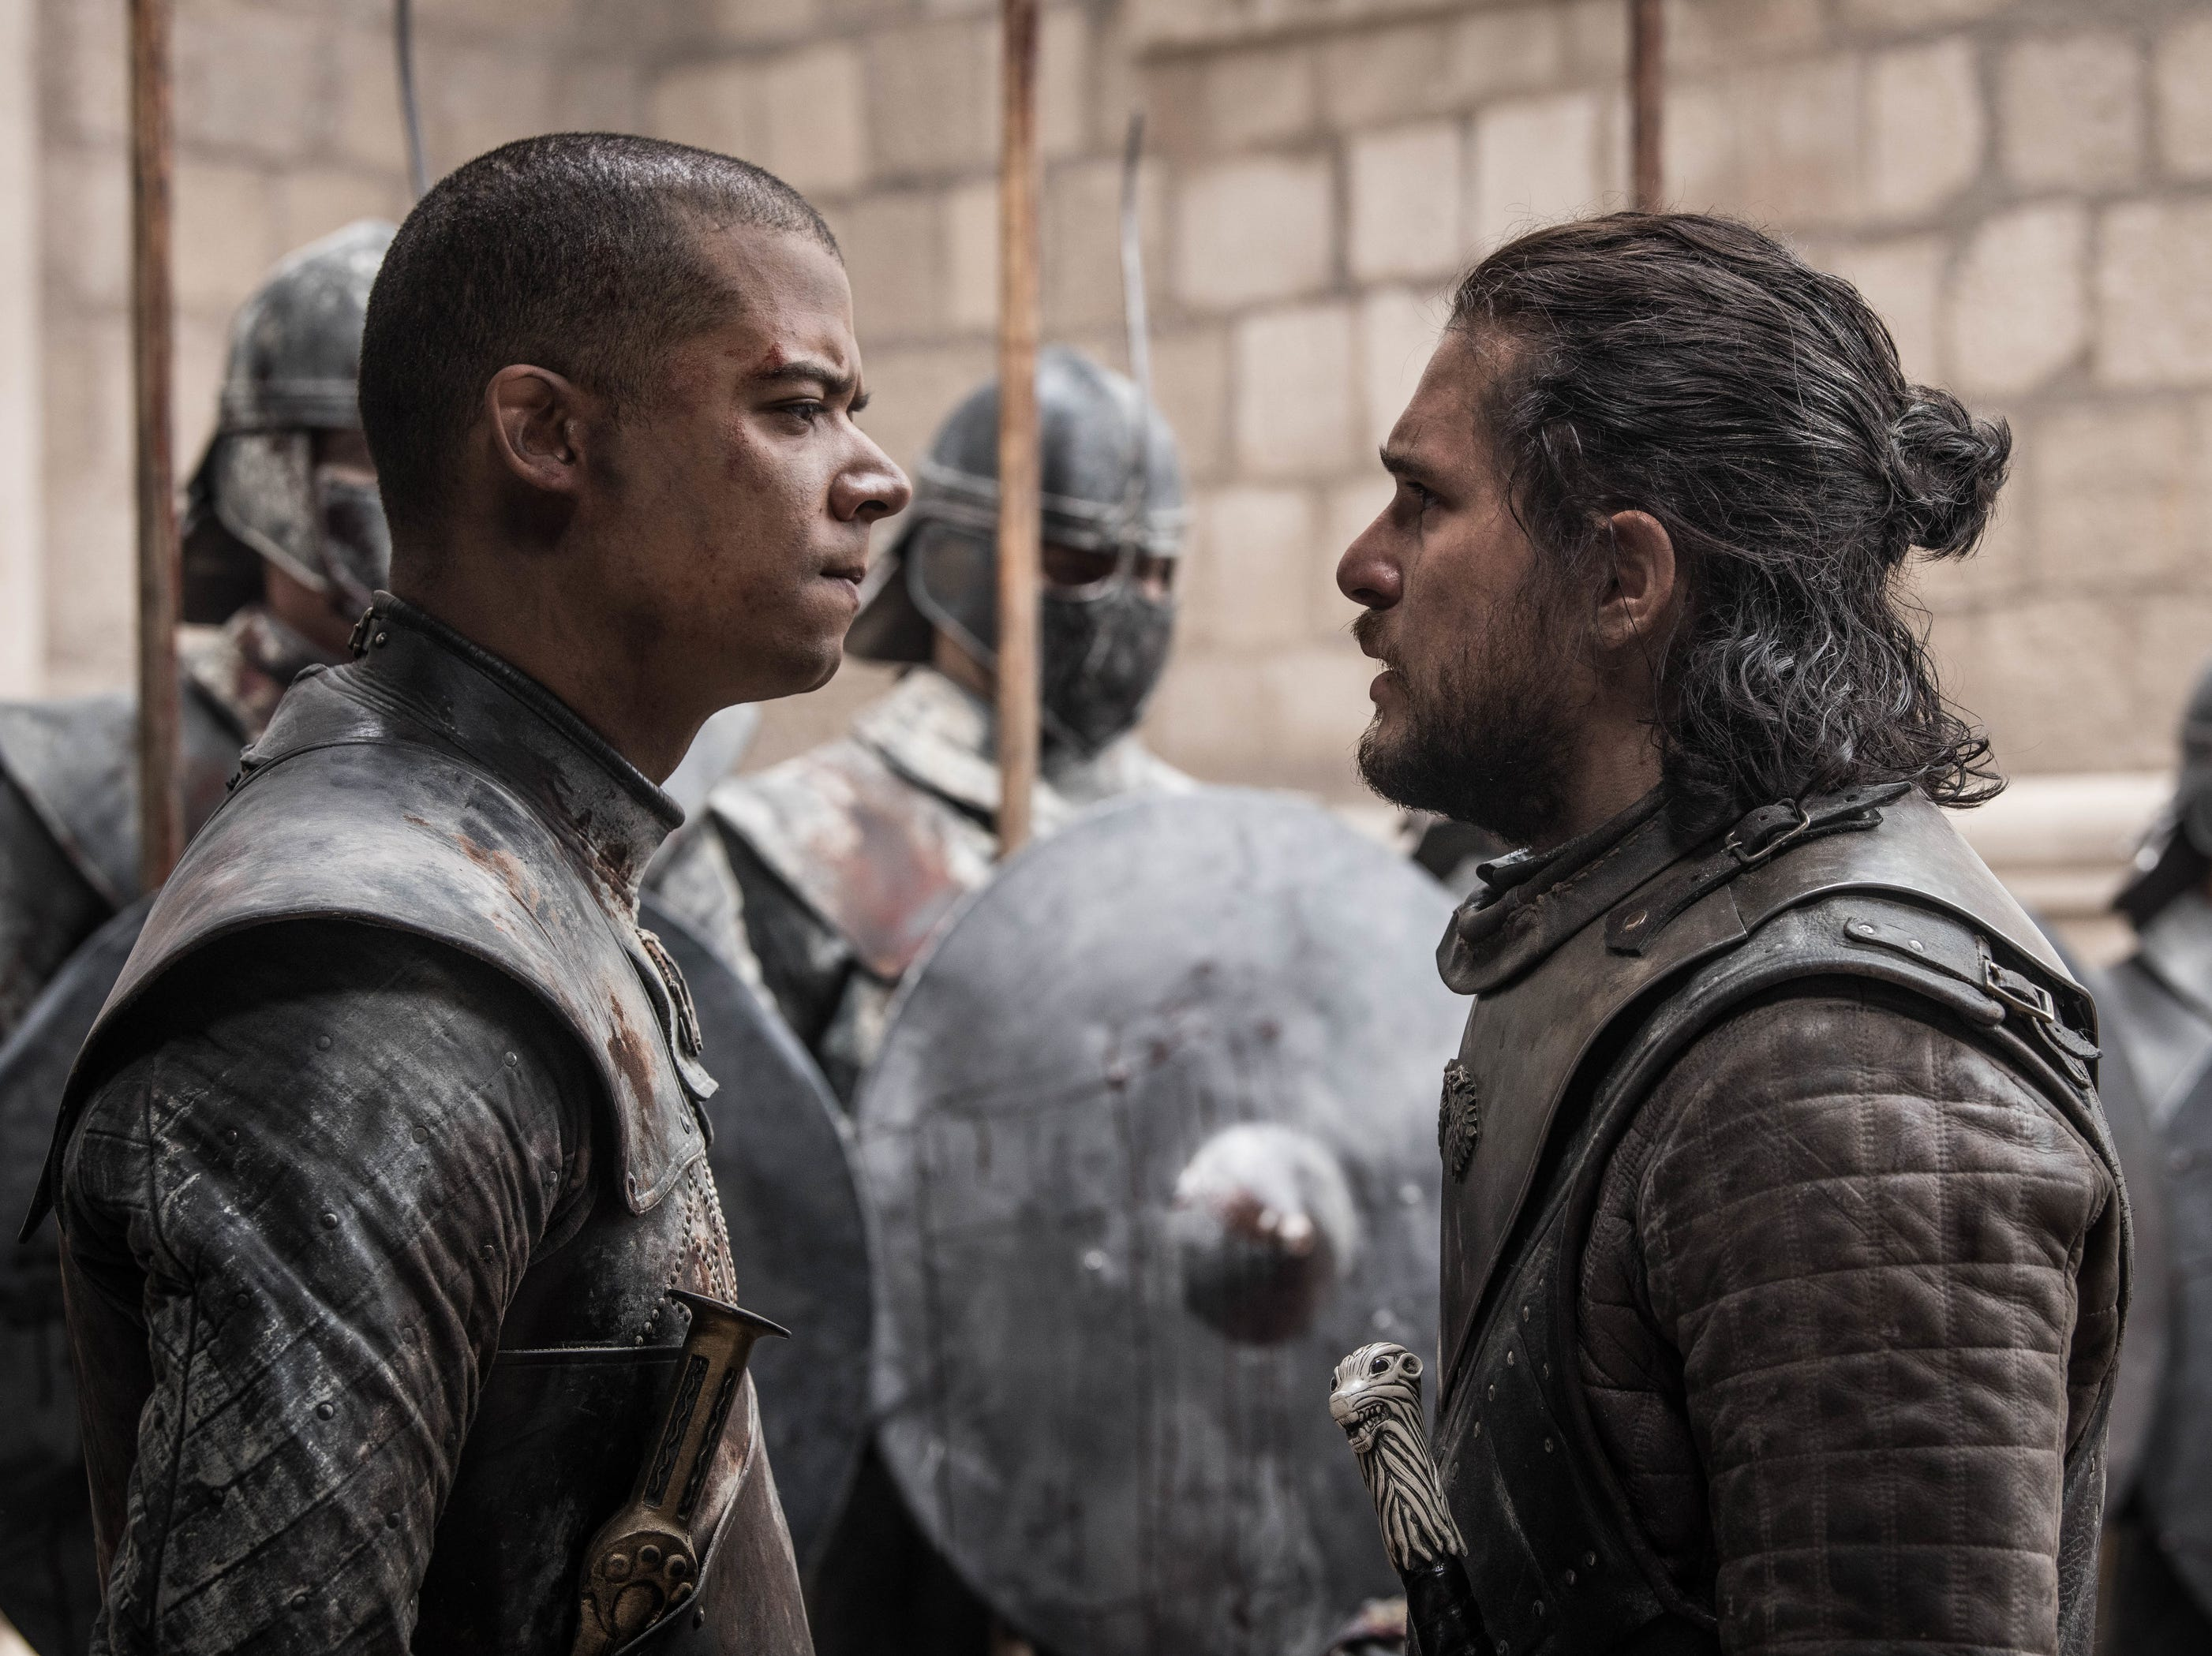 Grey Worm (Jacob Anderson, left) and Jon Snow (Kit Harington) disagree on what to do with Cersei Lannister's defeated soldiers.